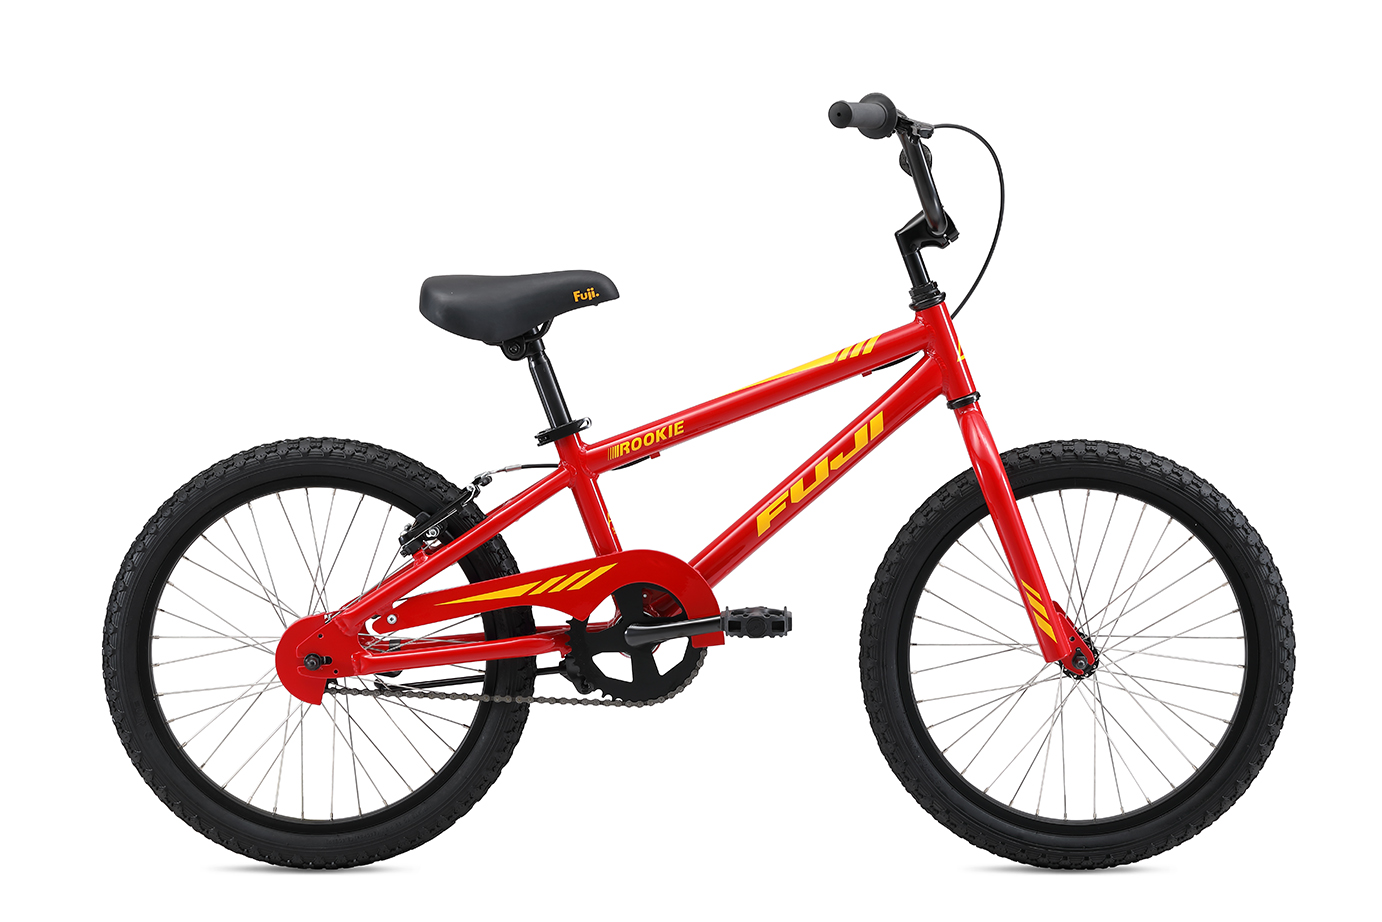 """Fuji Rookie 20"""" Boys   The all-new lightweight and durable aluminum frame, easy-to-use coaster brake with additional v-brake option to help little ones adjust to hand braking and aluminum wheels with stainless steel spokes that are durable and don't rust over time make for the perfect kids bike."""